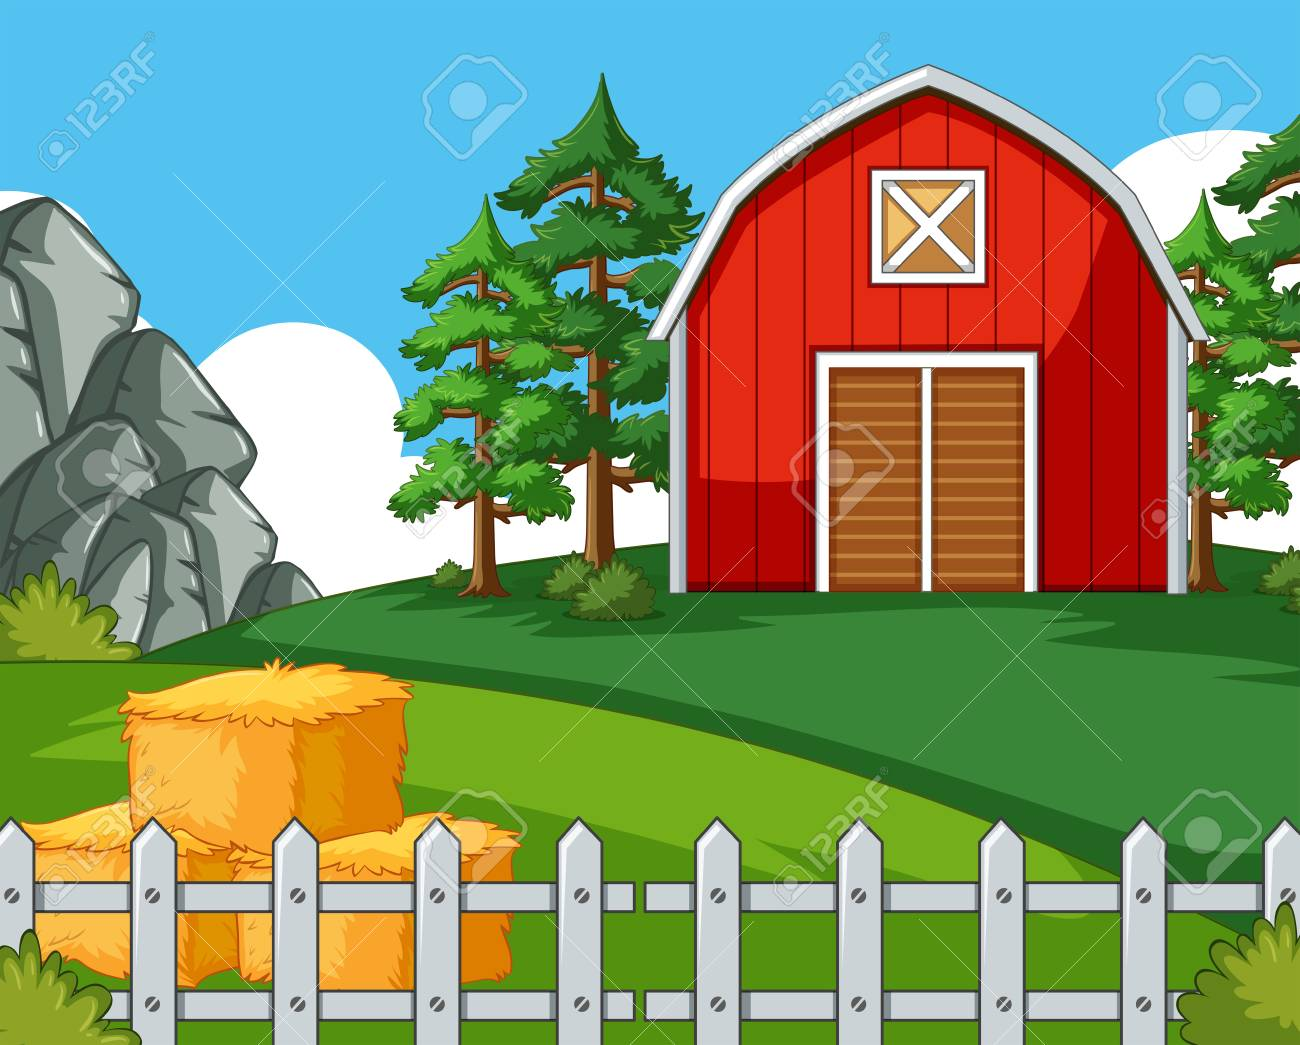 Background scene with barn and hay illustration.